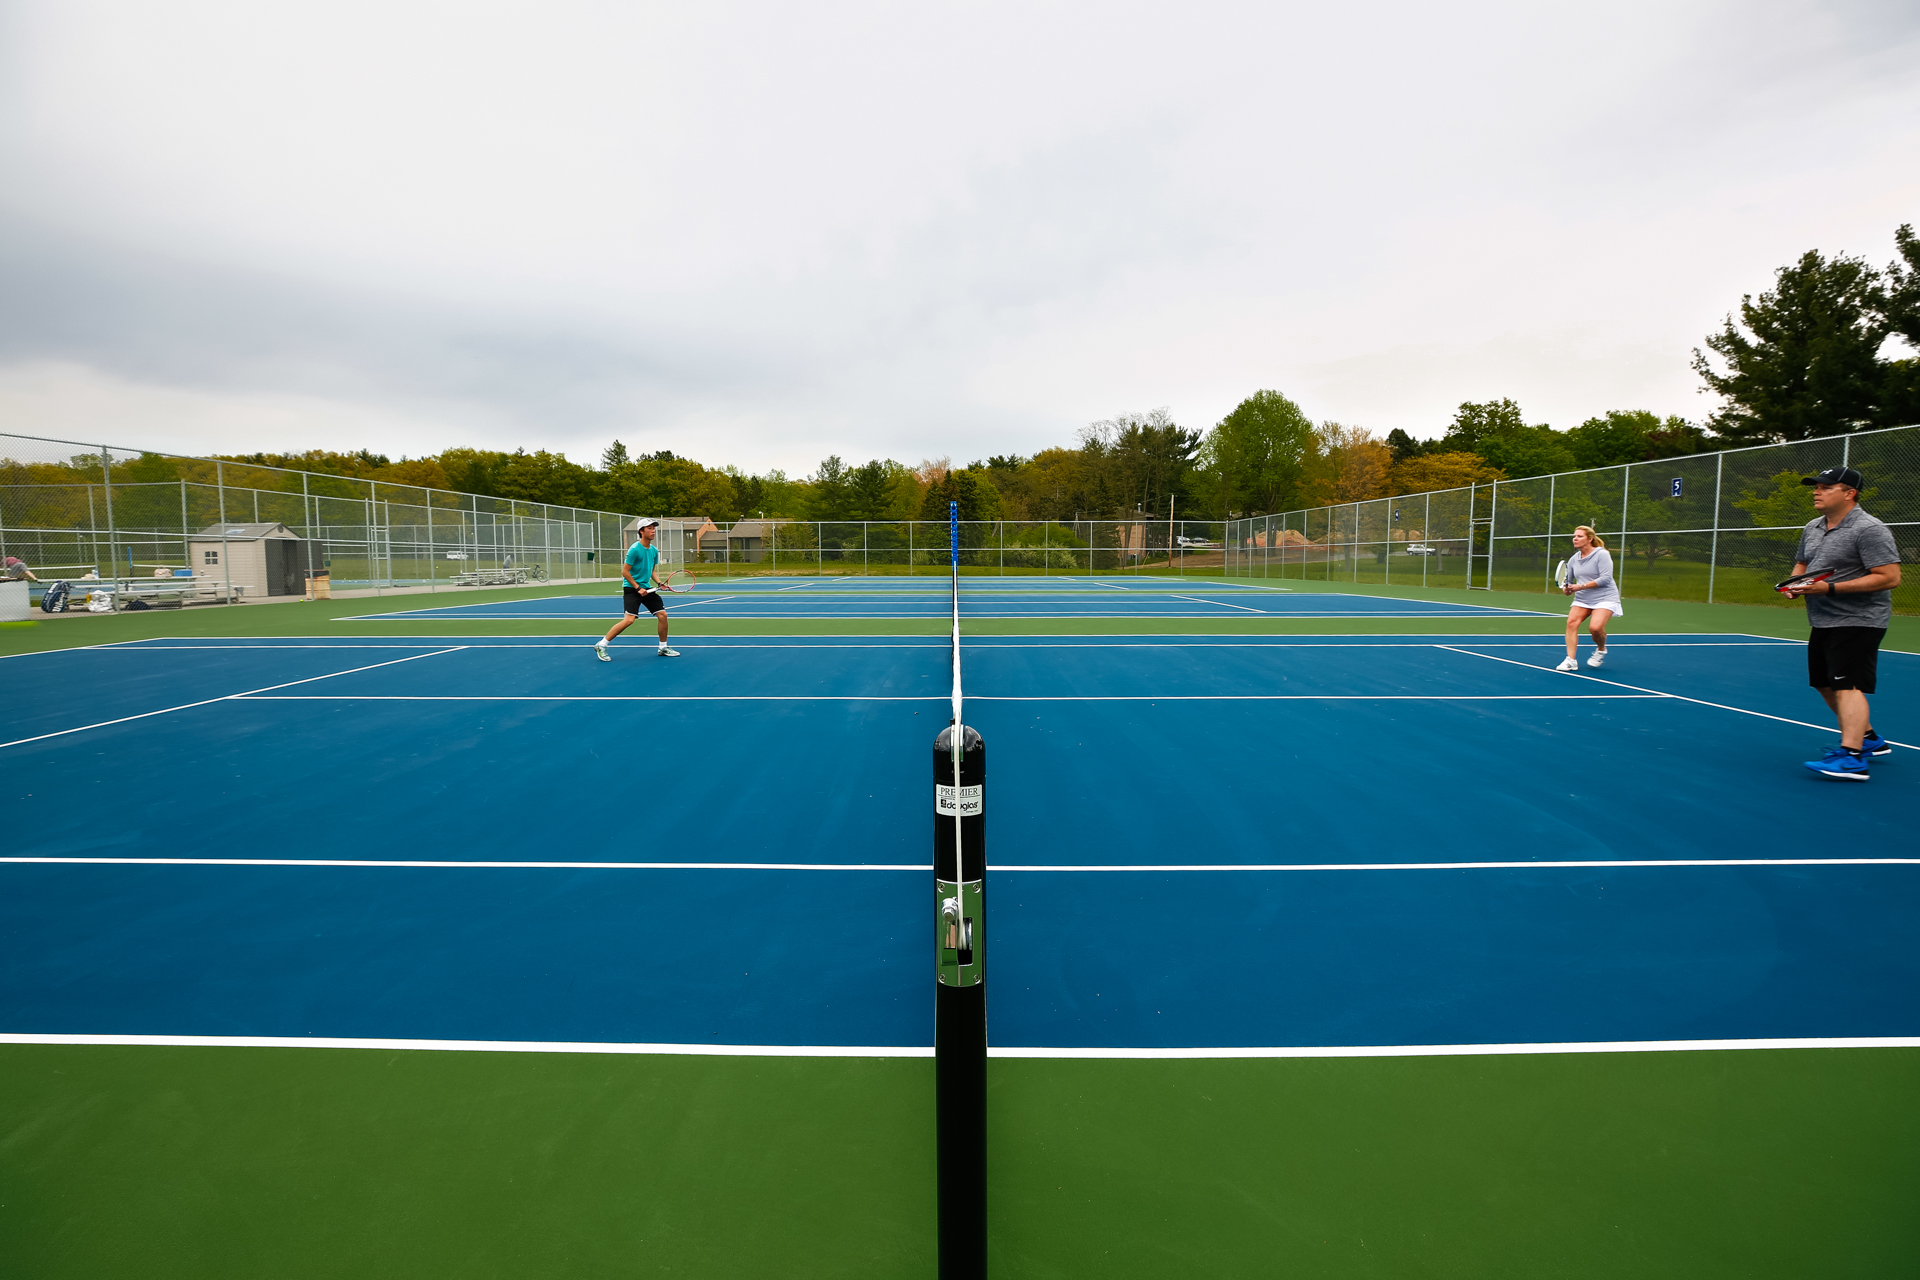 LaluTennisCourtDedication2017-1597.jpg